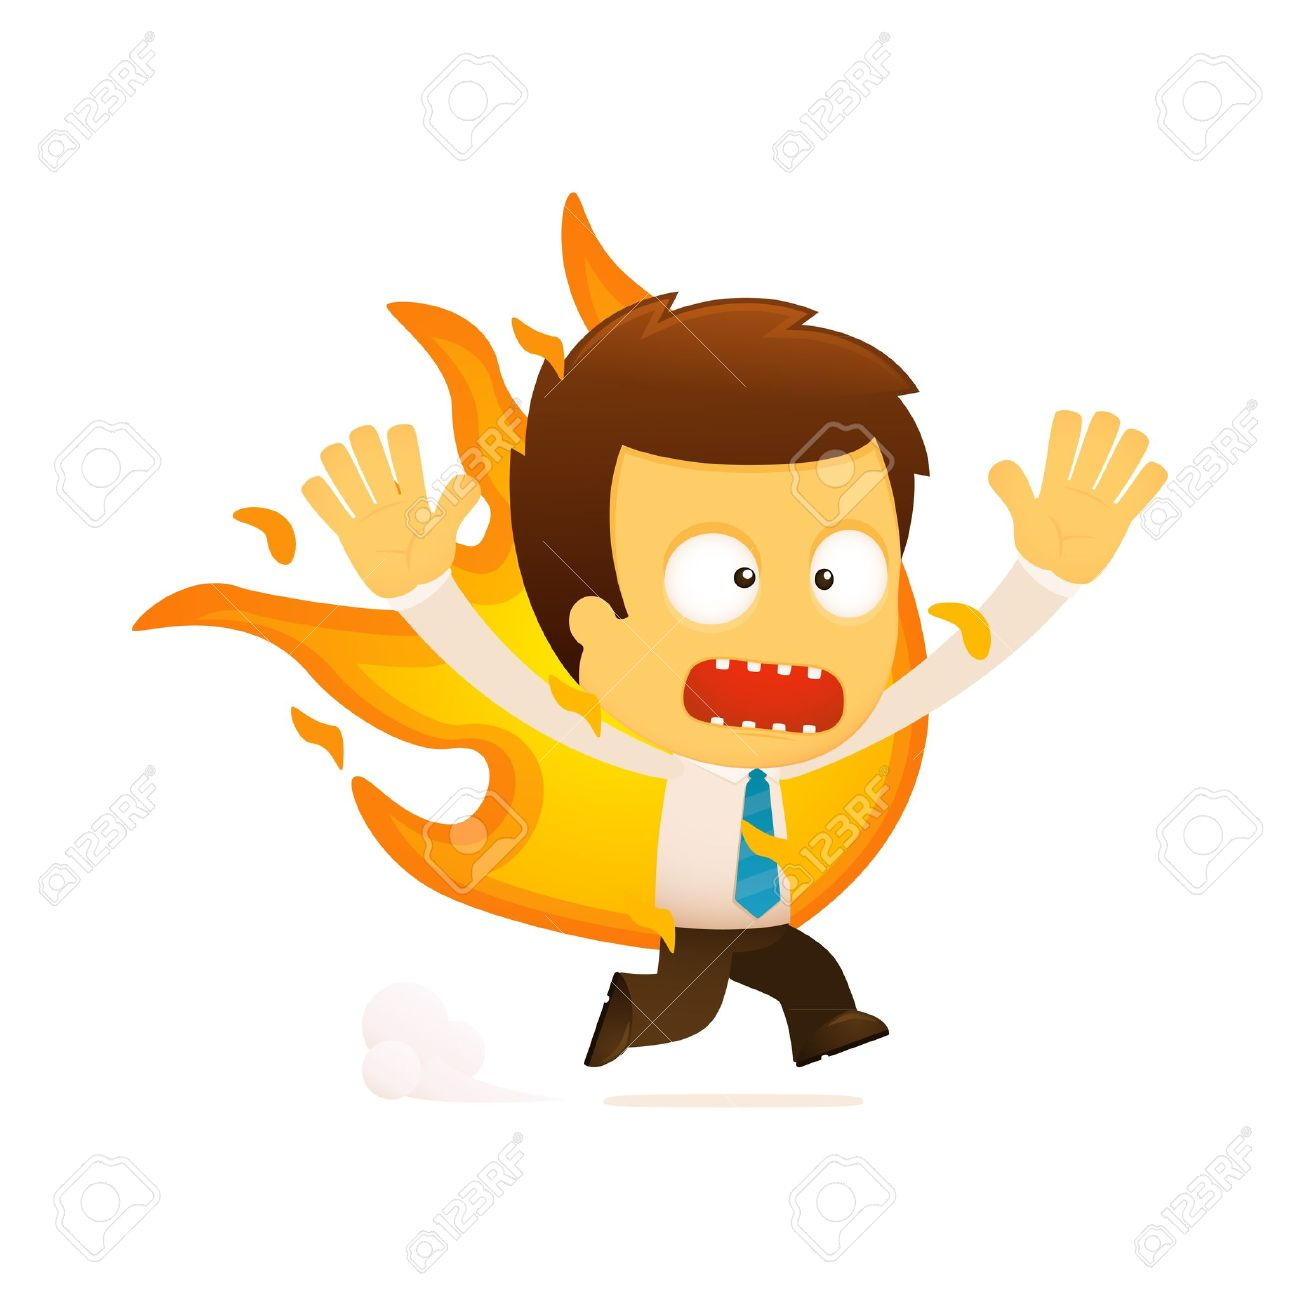 smart worker stock illustrations cliparts and royalty smart worker funny cartoon office worker illustration